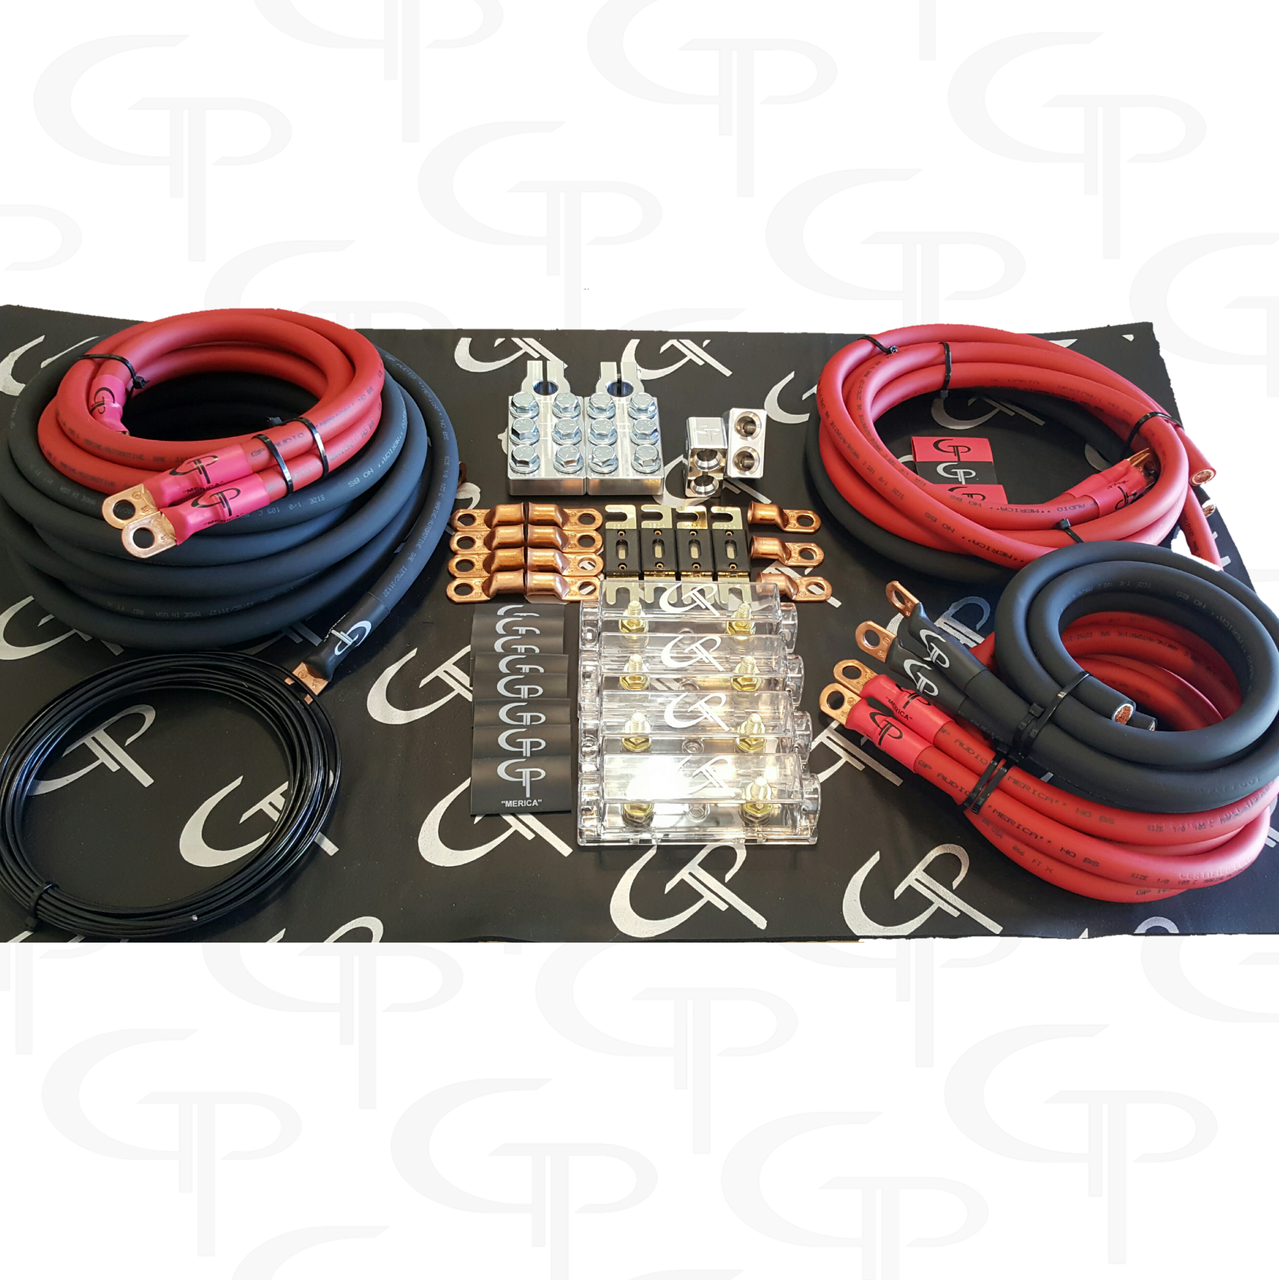 audio amplifier wiring the complete advanced 1 0 awg stage 2 wiring kit gp car audio audio amplifier with wifi 0 awg stage 2 wiring kit